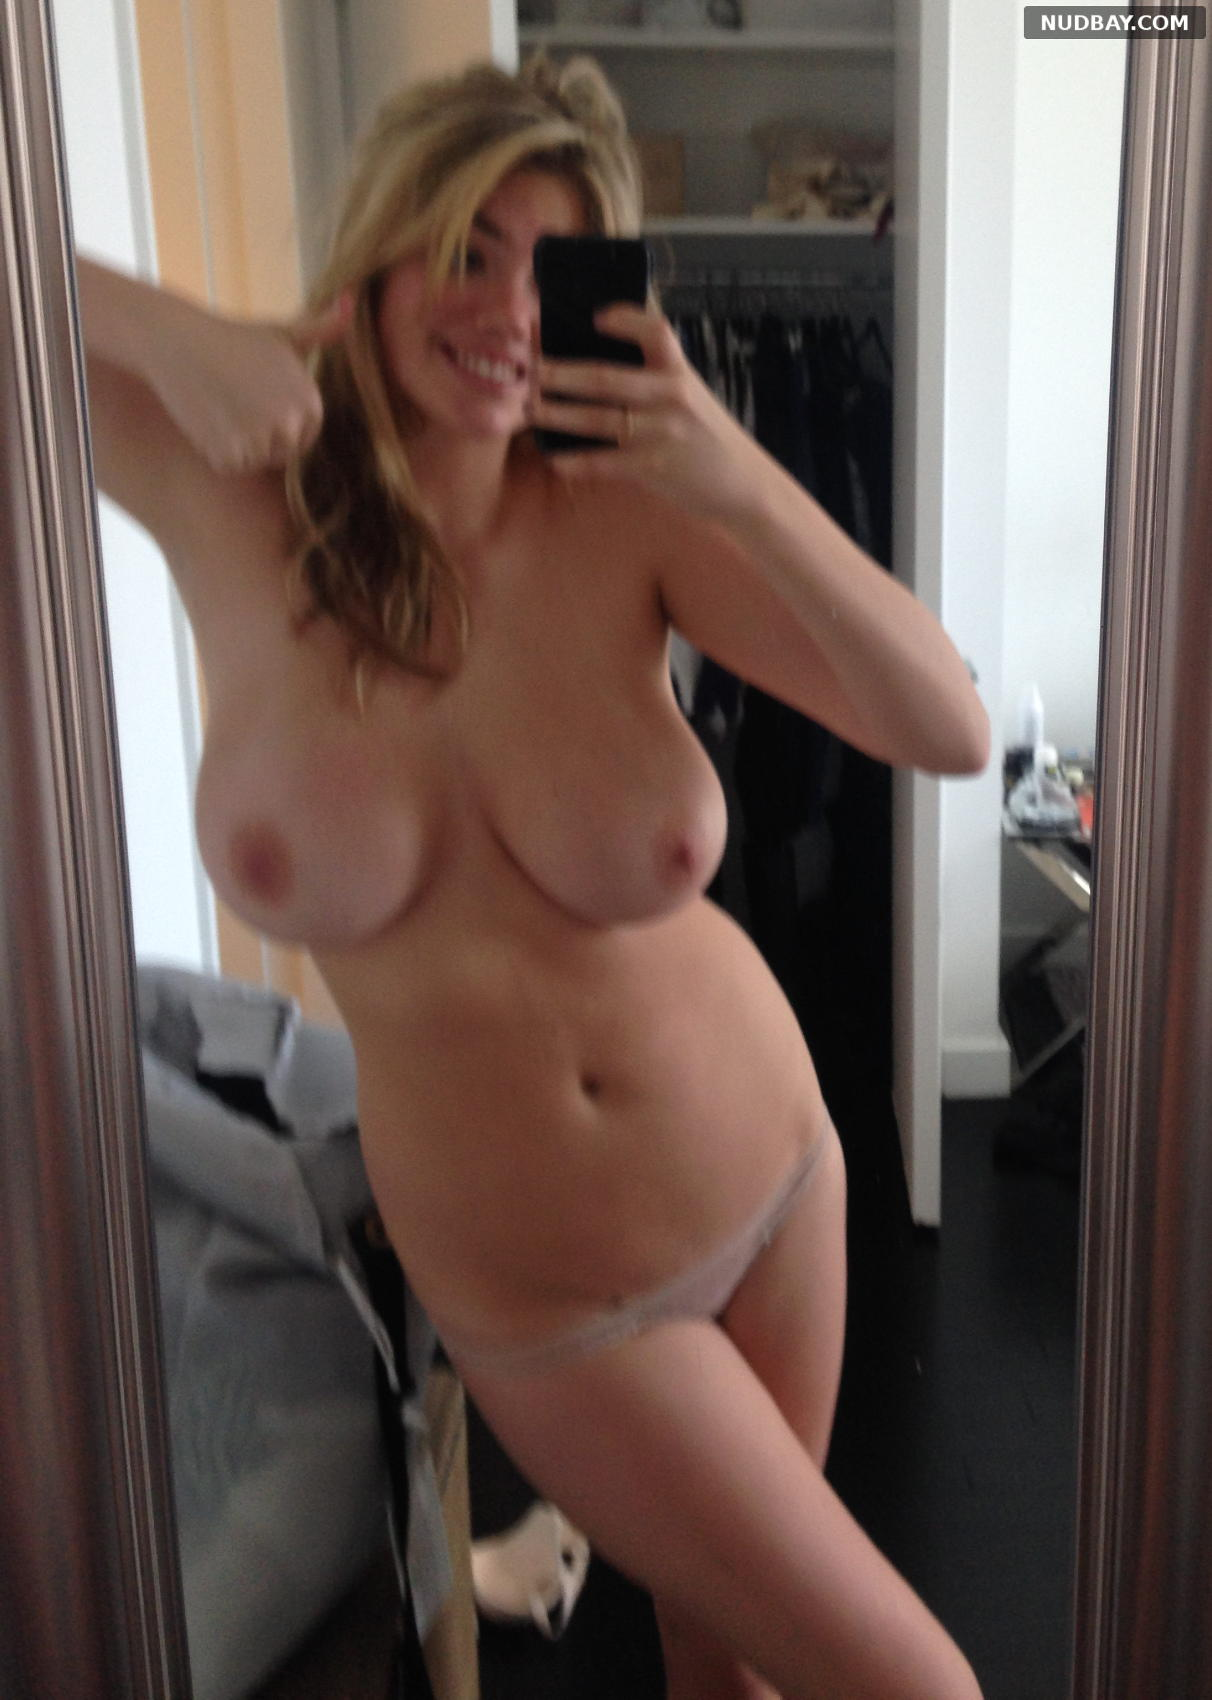 Kate Upton nude selfie shows tits 2021